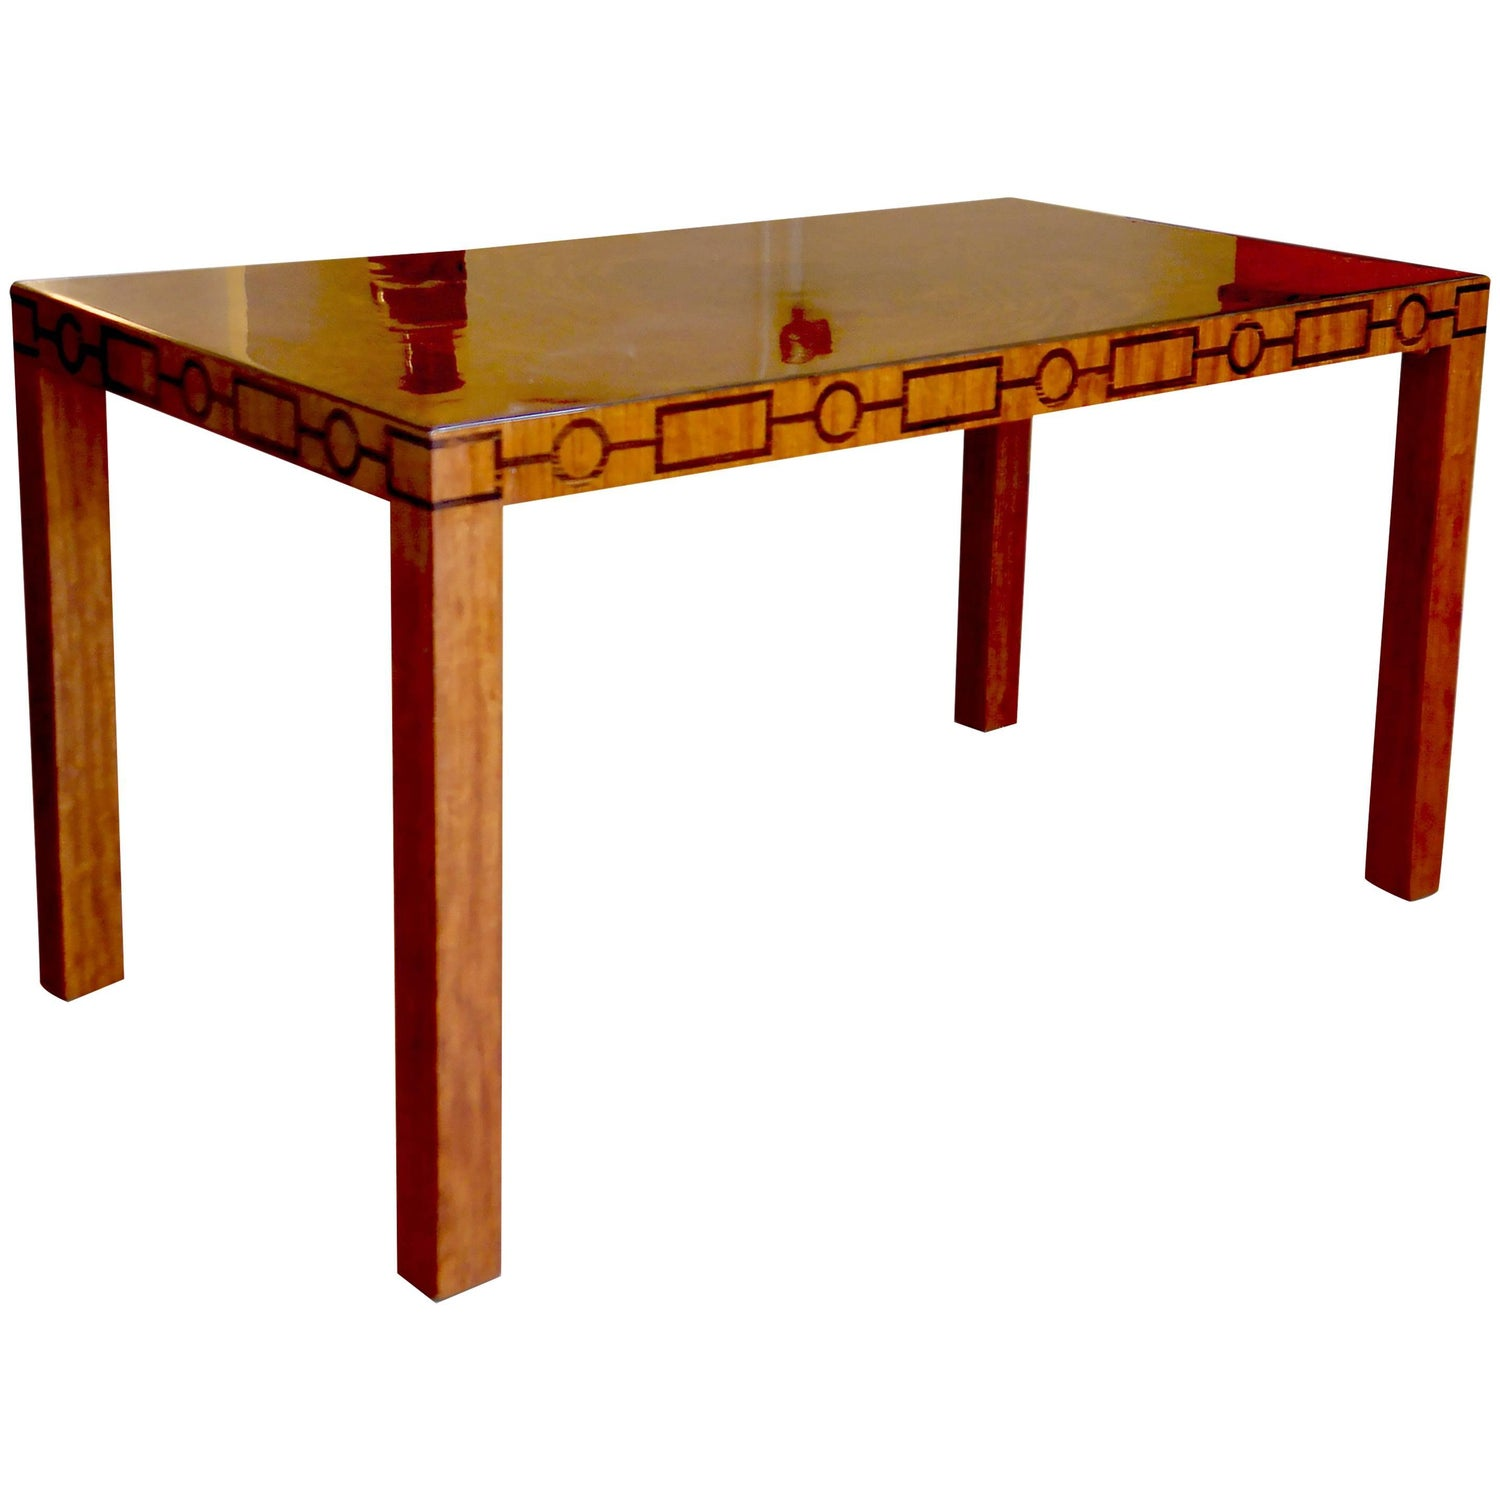 1920s Coffee and Cocktail Tables 95 For Sale at 1stdibs